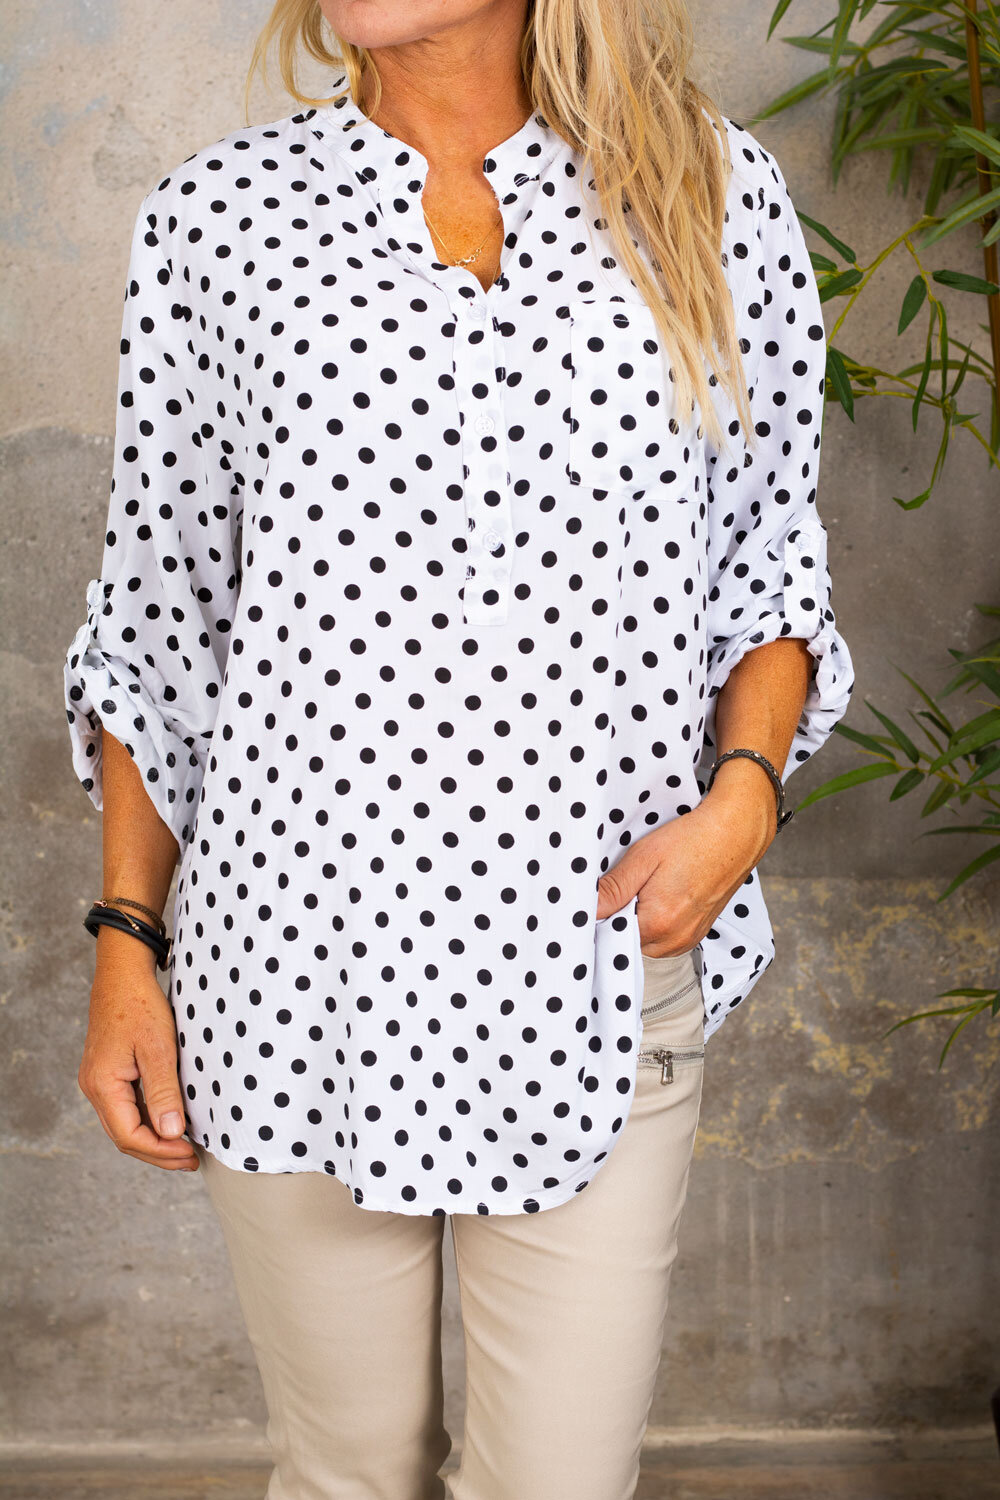 Cora Blouse - Dotted - White